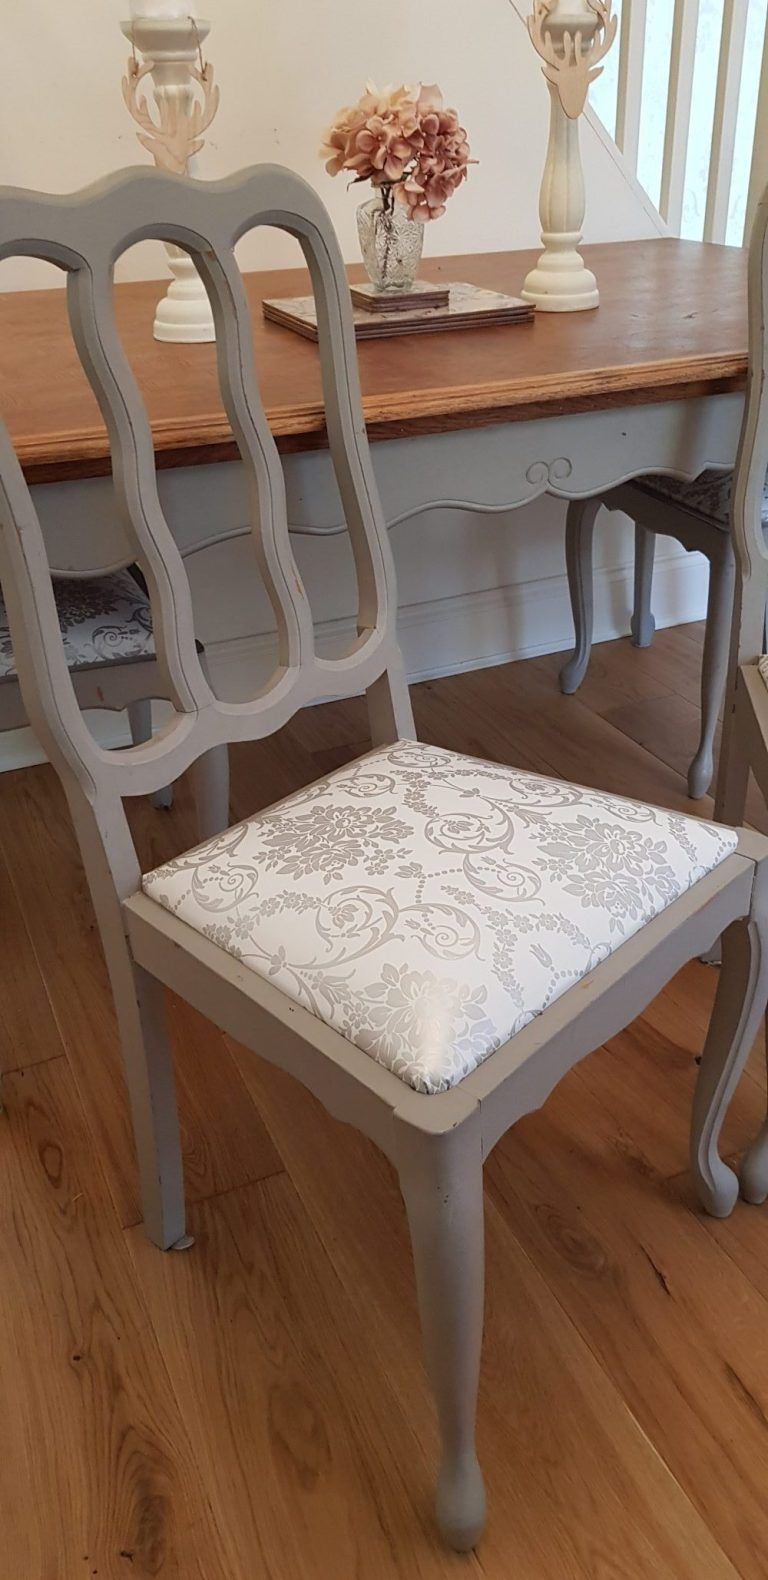 How to reupholster dining table chair covers in 6 easy